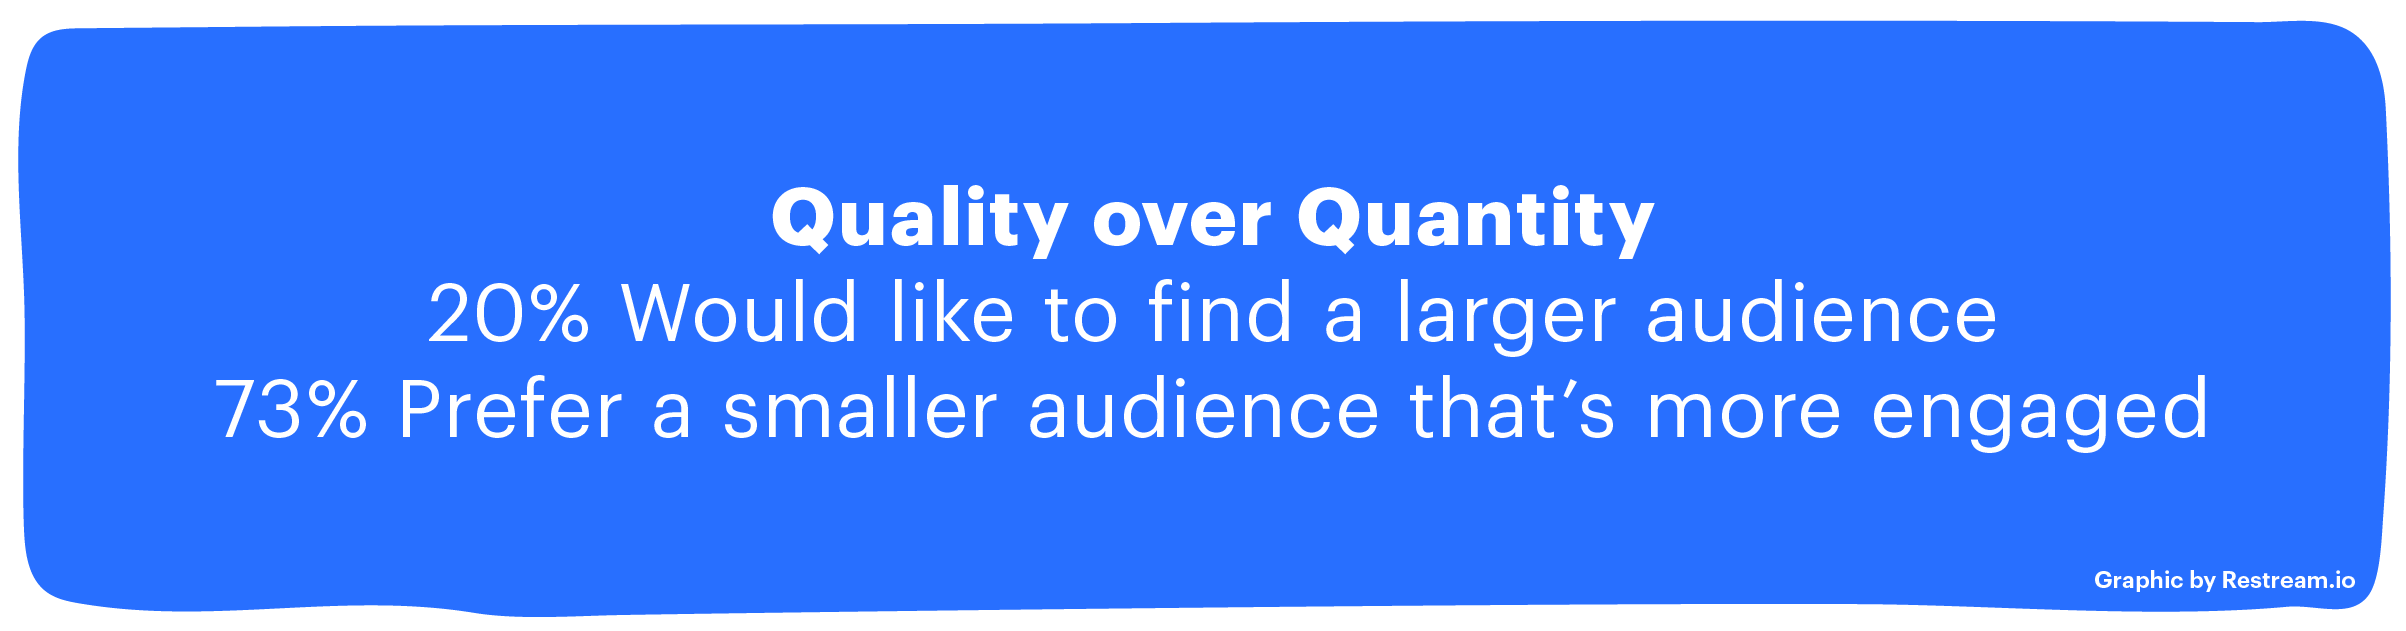 Quality over quantity in live streaming